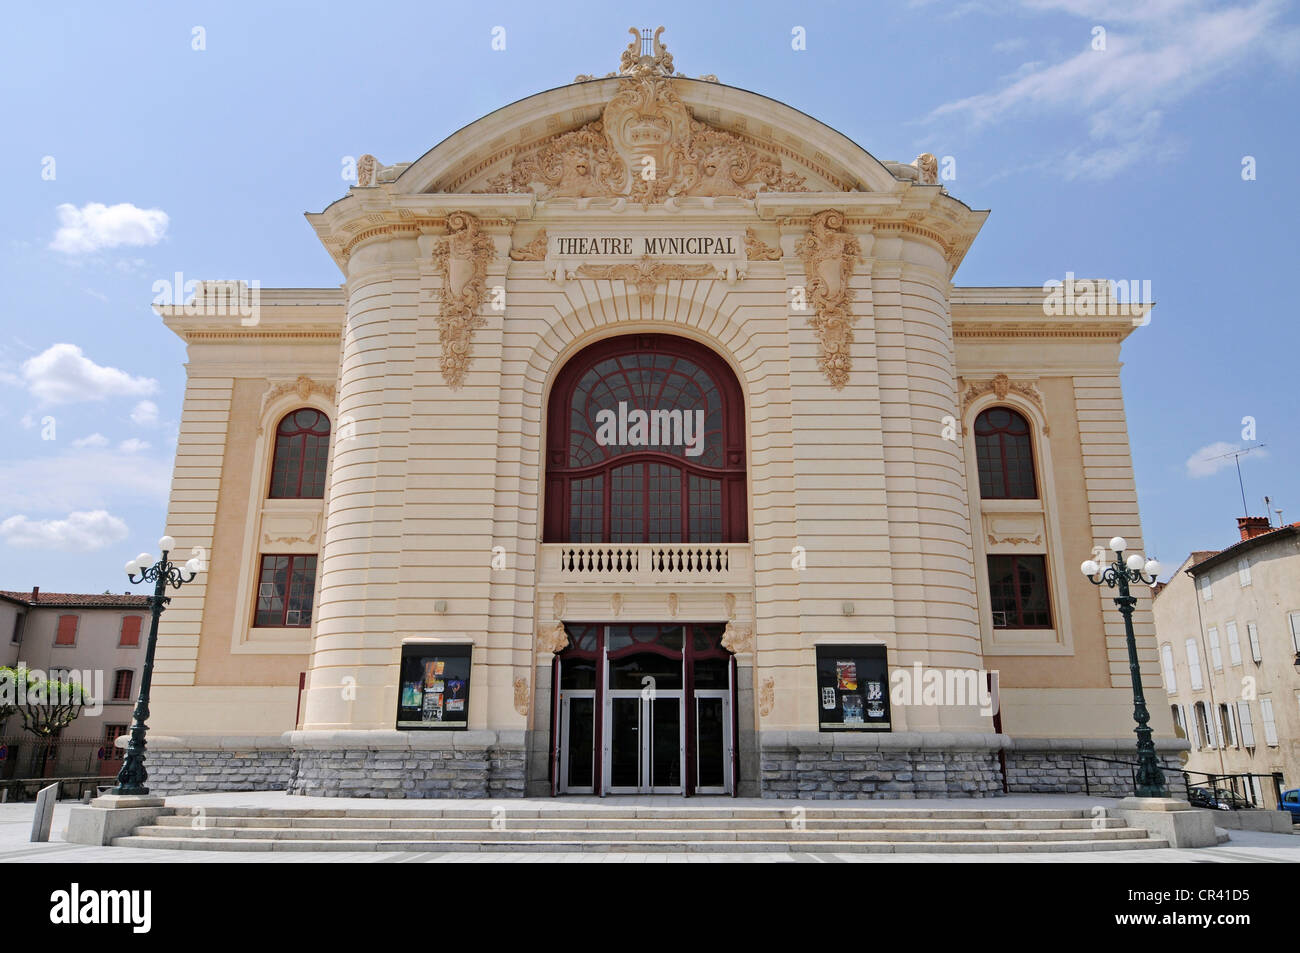 Theater, Castres, Departement Tarn, Midi-Pyrenees, France, Europe - Stock Image